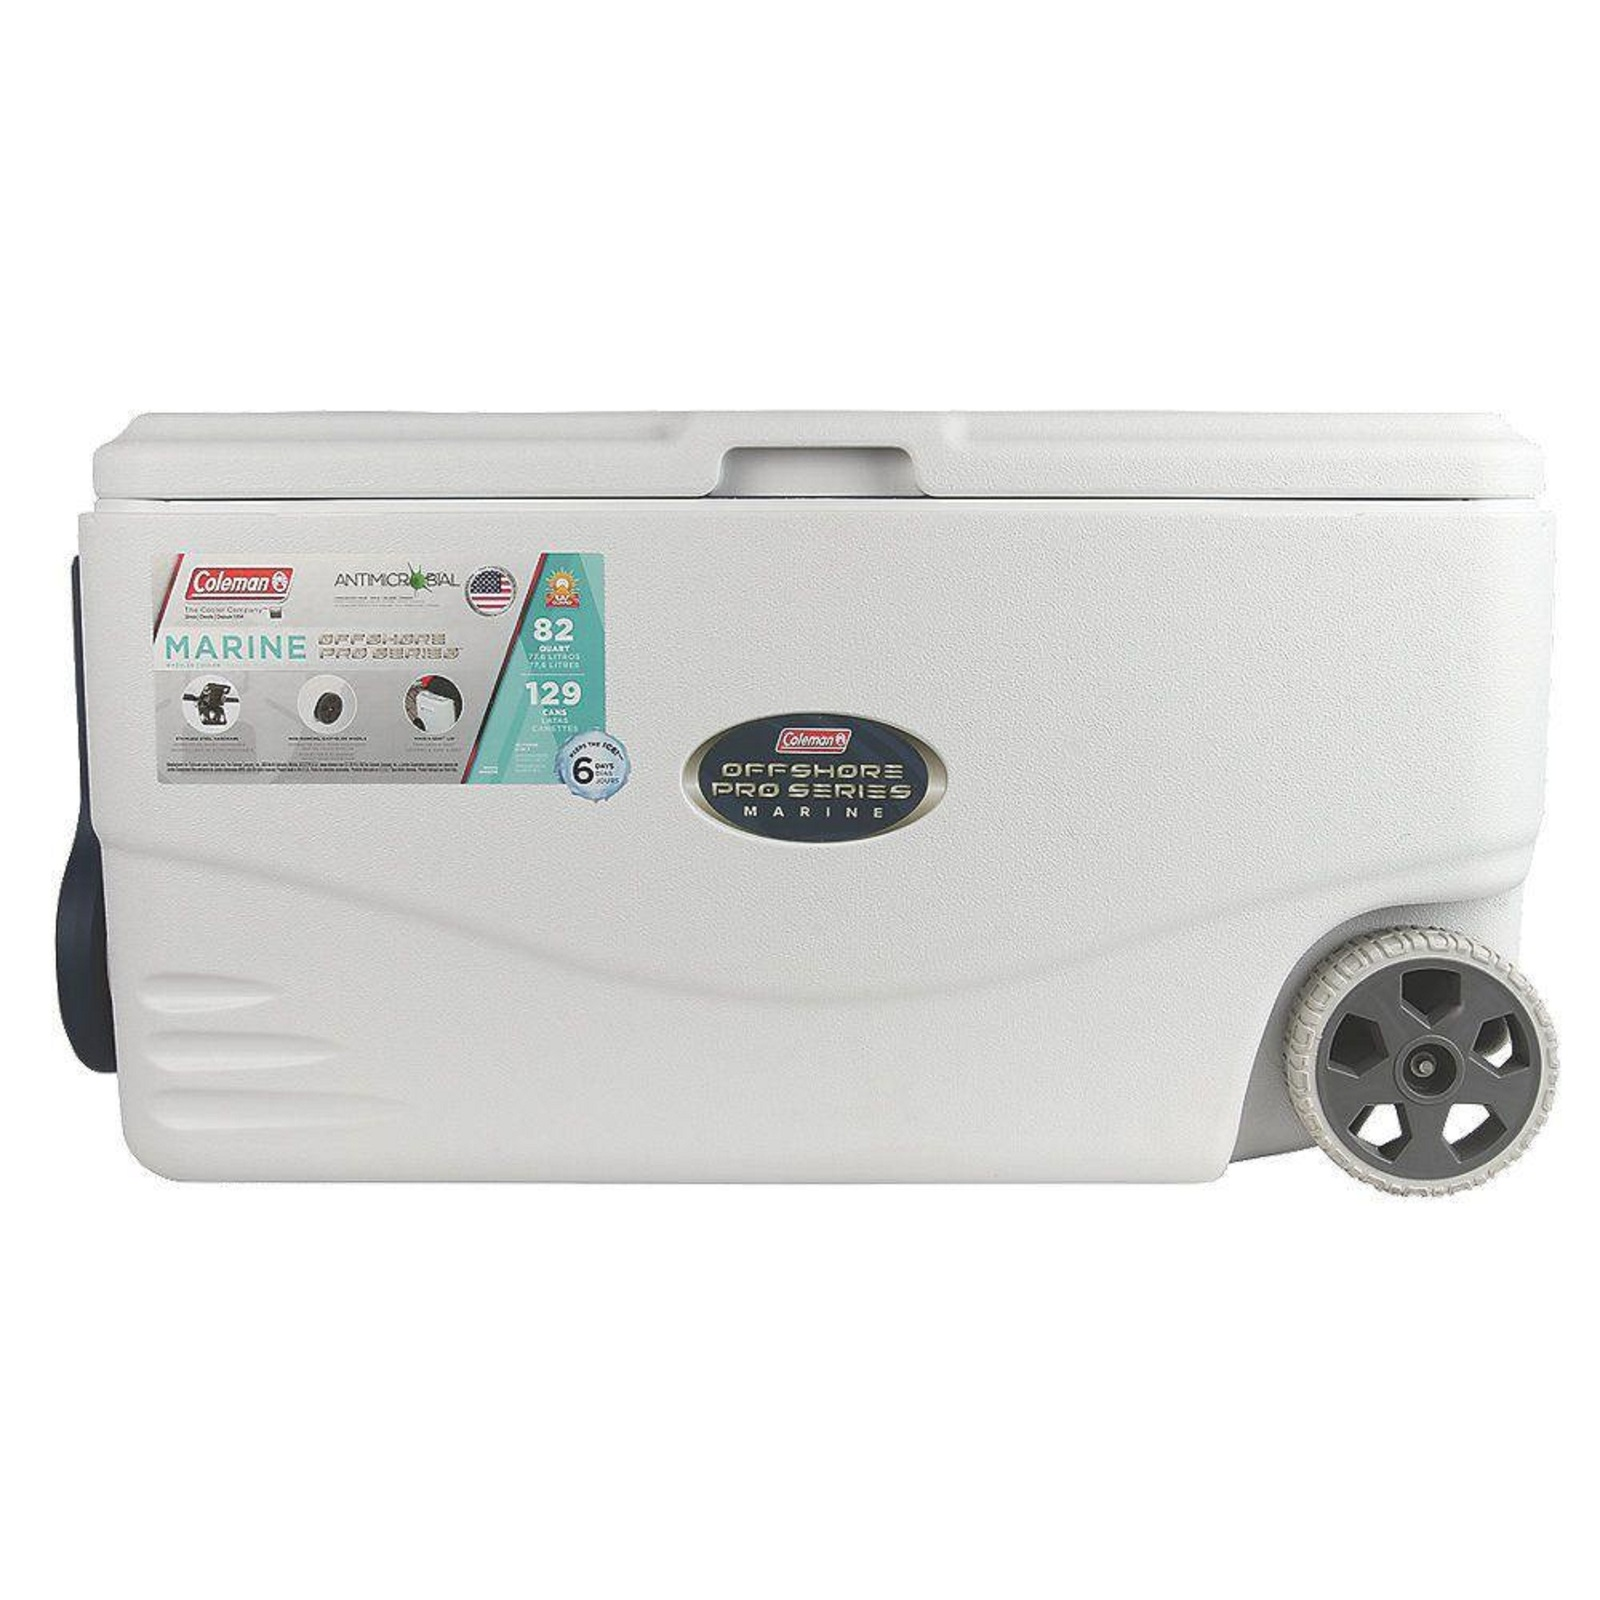 Portable Chest Cooler with Wheel 82 Quarts White Heavy Duty Beverage Food Holder